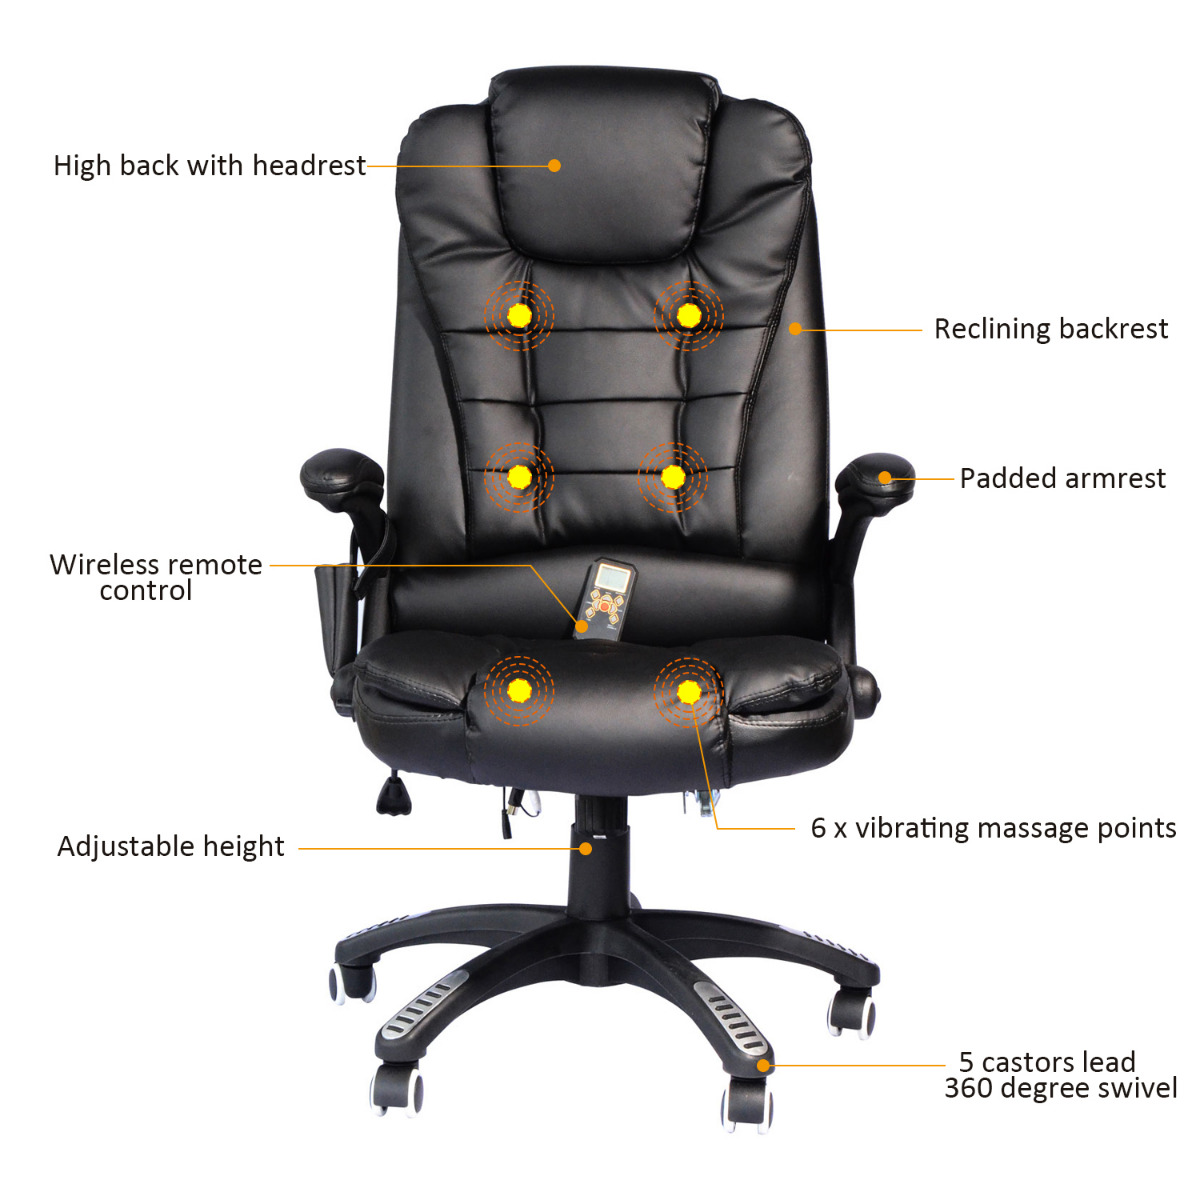 Miraculous Homcom Heated Massage Chair Pu Leather High Back Executive Ergonomic Vibrating Office Chair Black Creativecarmelina Interior Chair Design Creativecarmelinacom